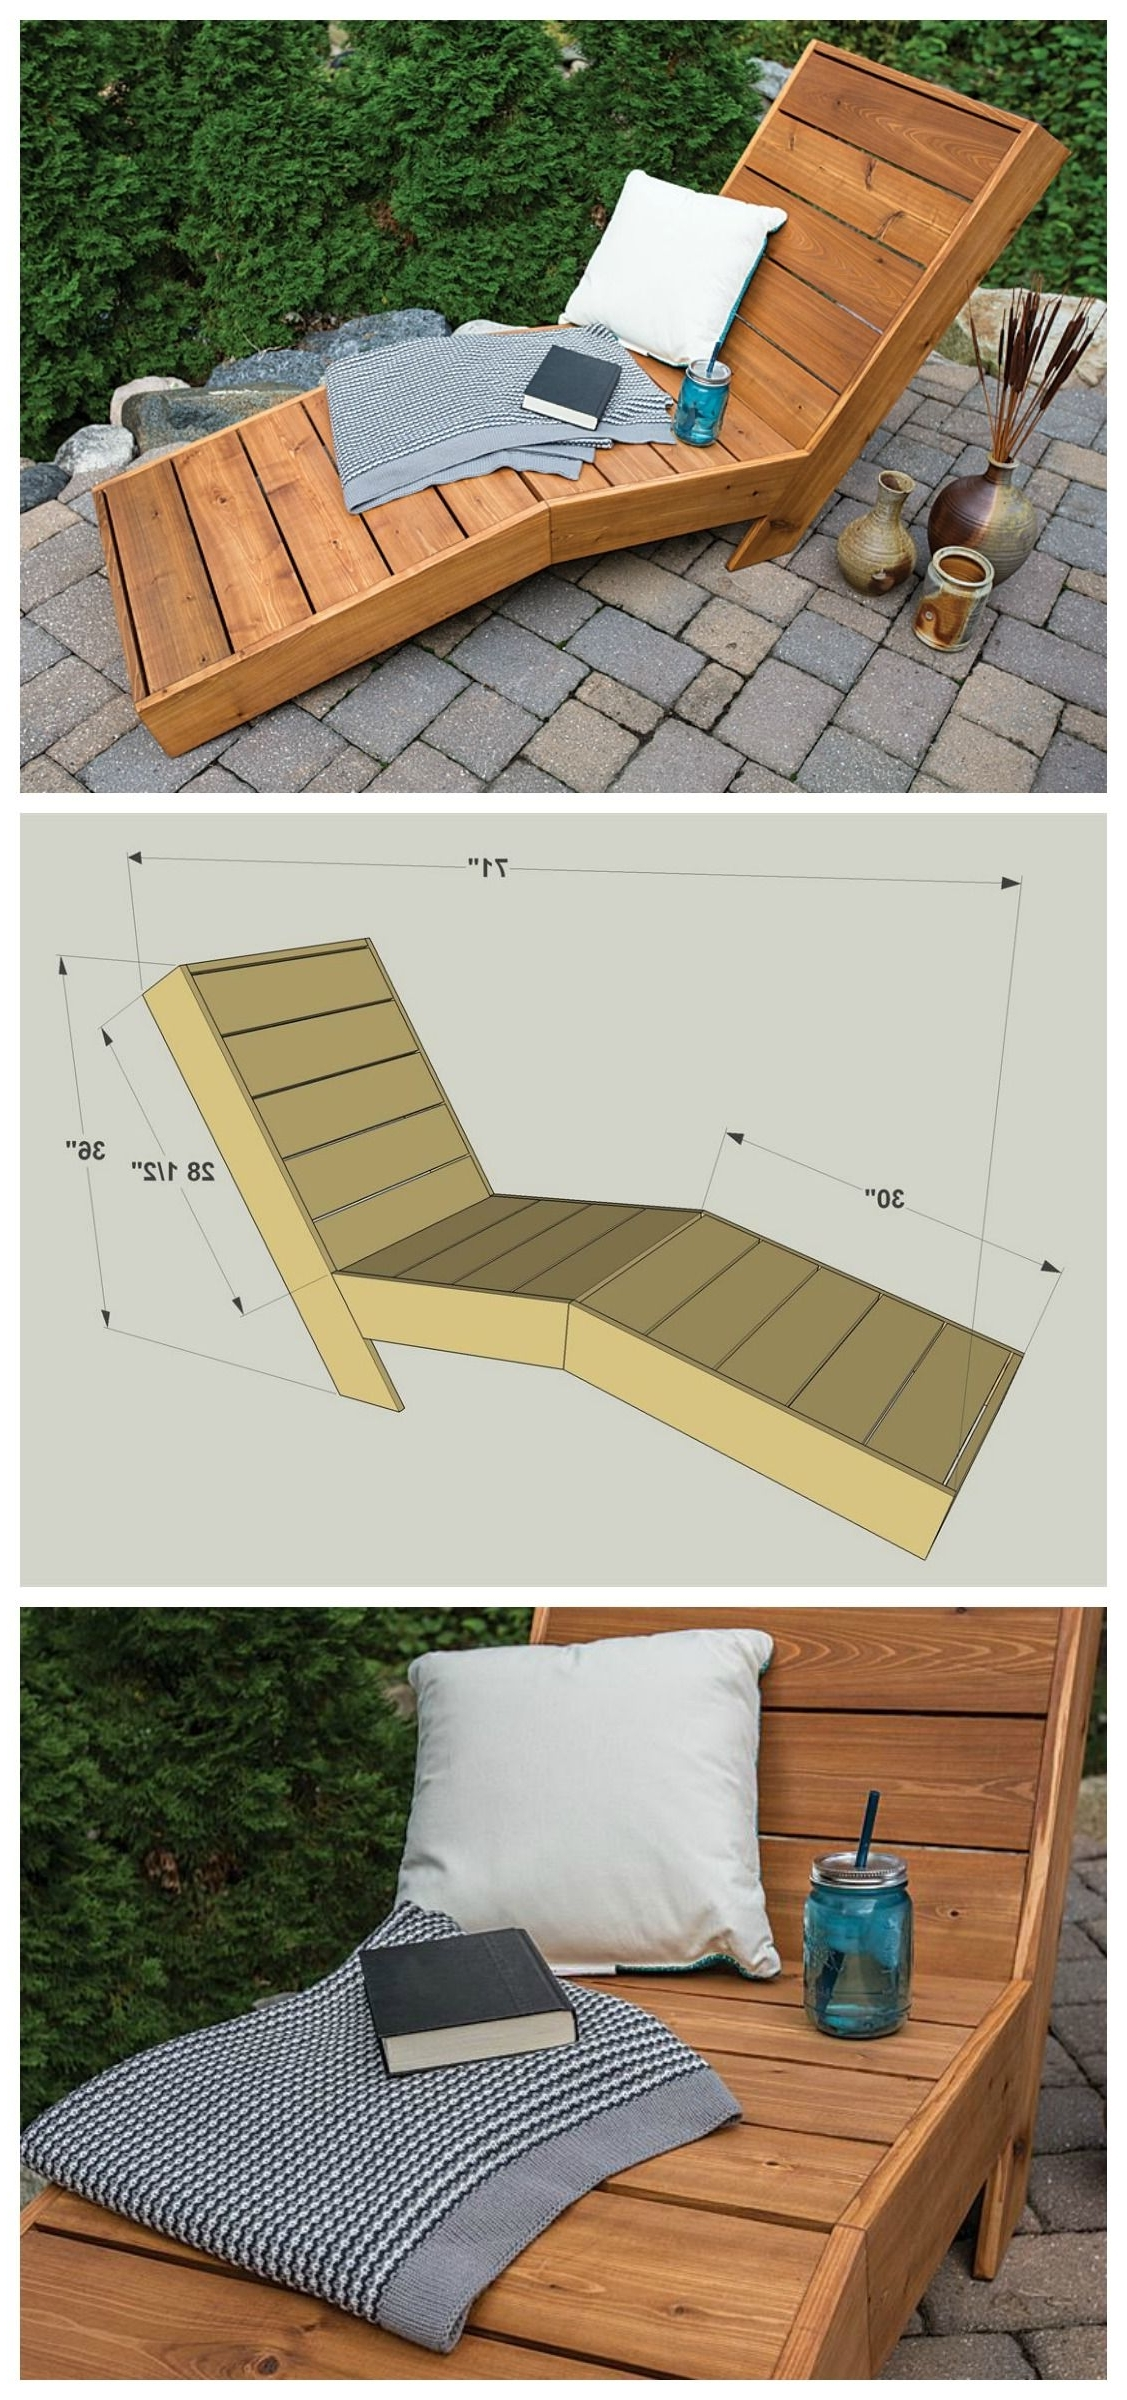 Diy Outdoor Chaise Lounge Chairs Inside Well Known Diy Outdoor Chaise Lounge :: Free Plans At Buildsomething (View 12 of 15)